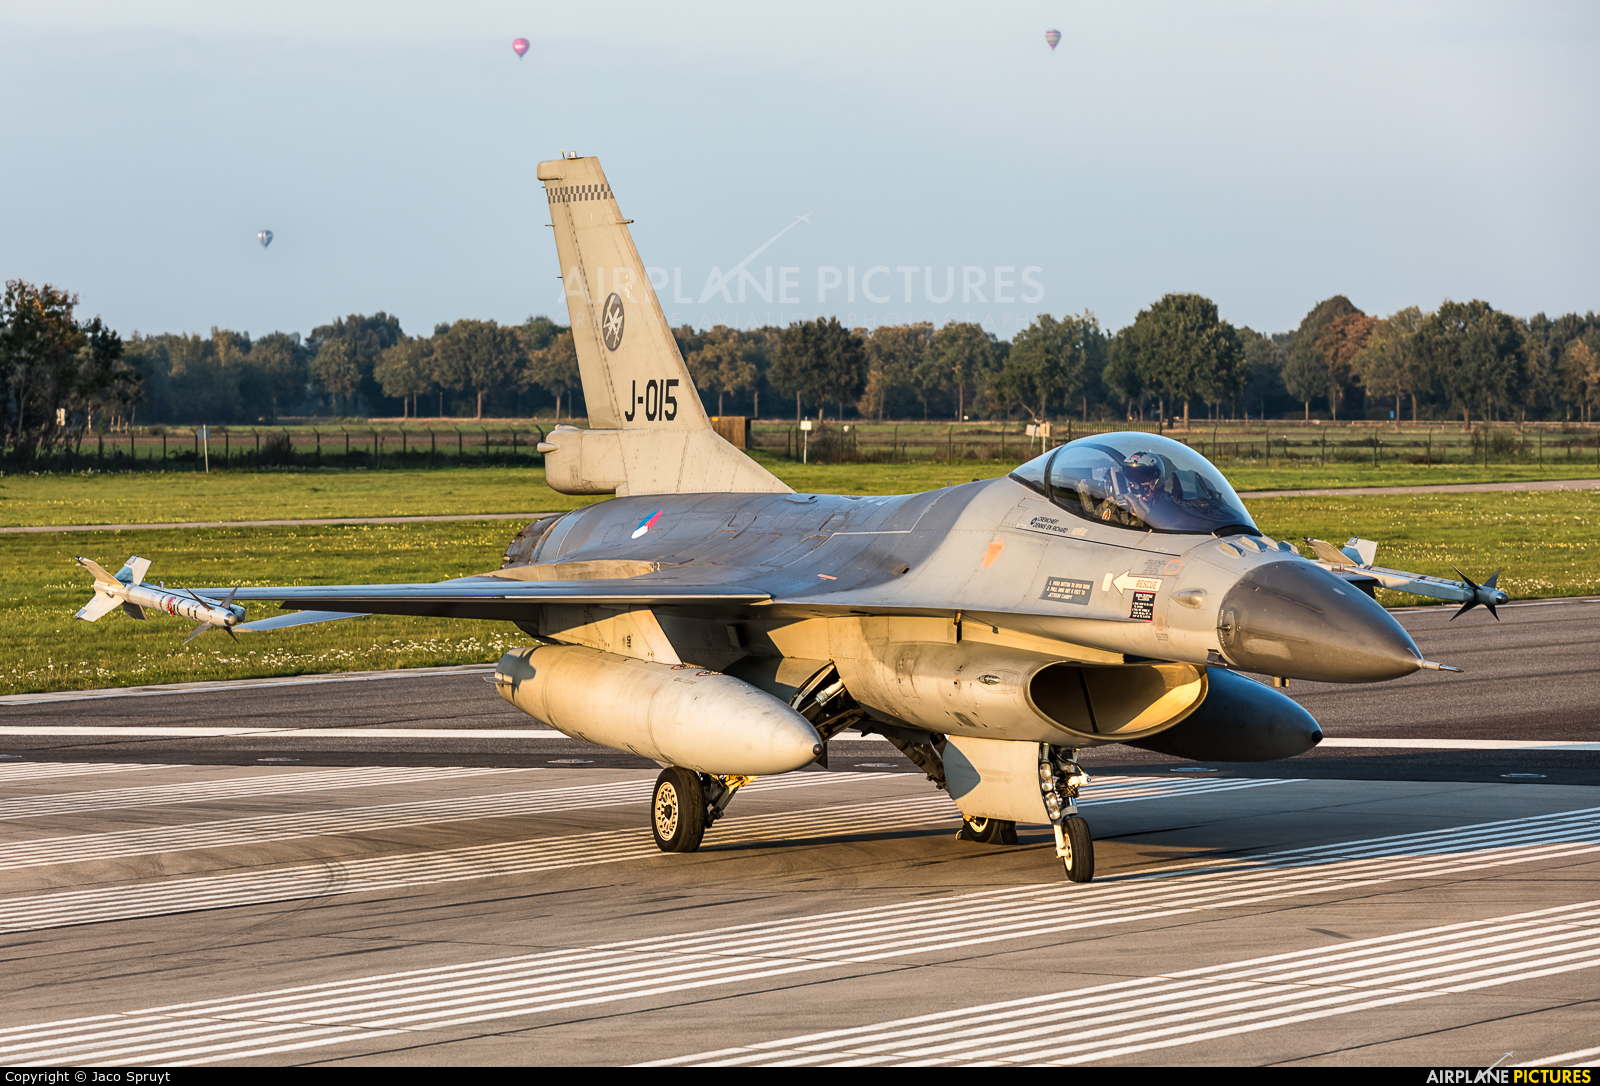 Netherlands - Air Force J-015 aircraft at Uden - Volkel